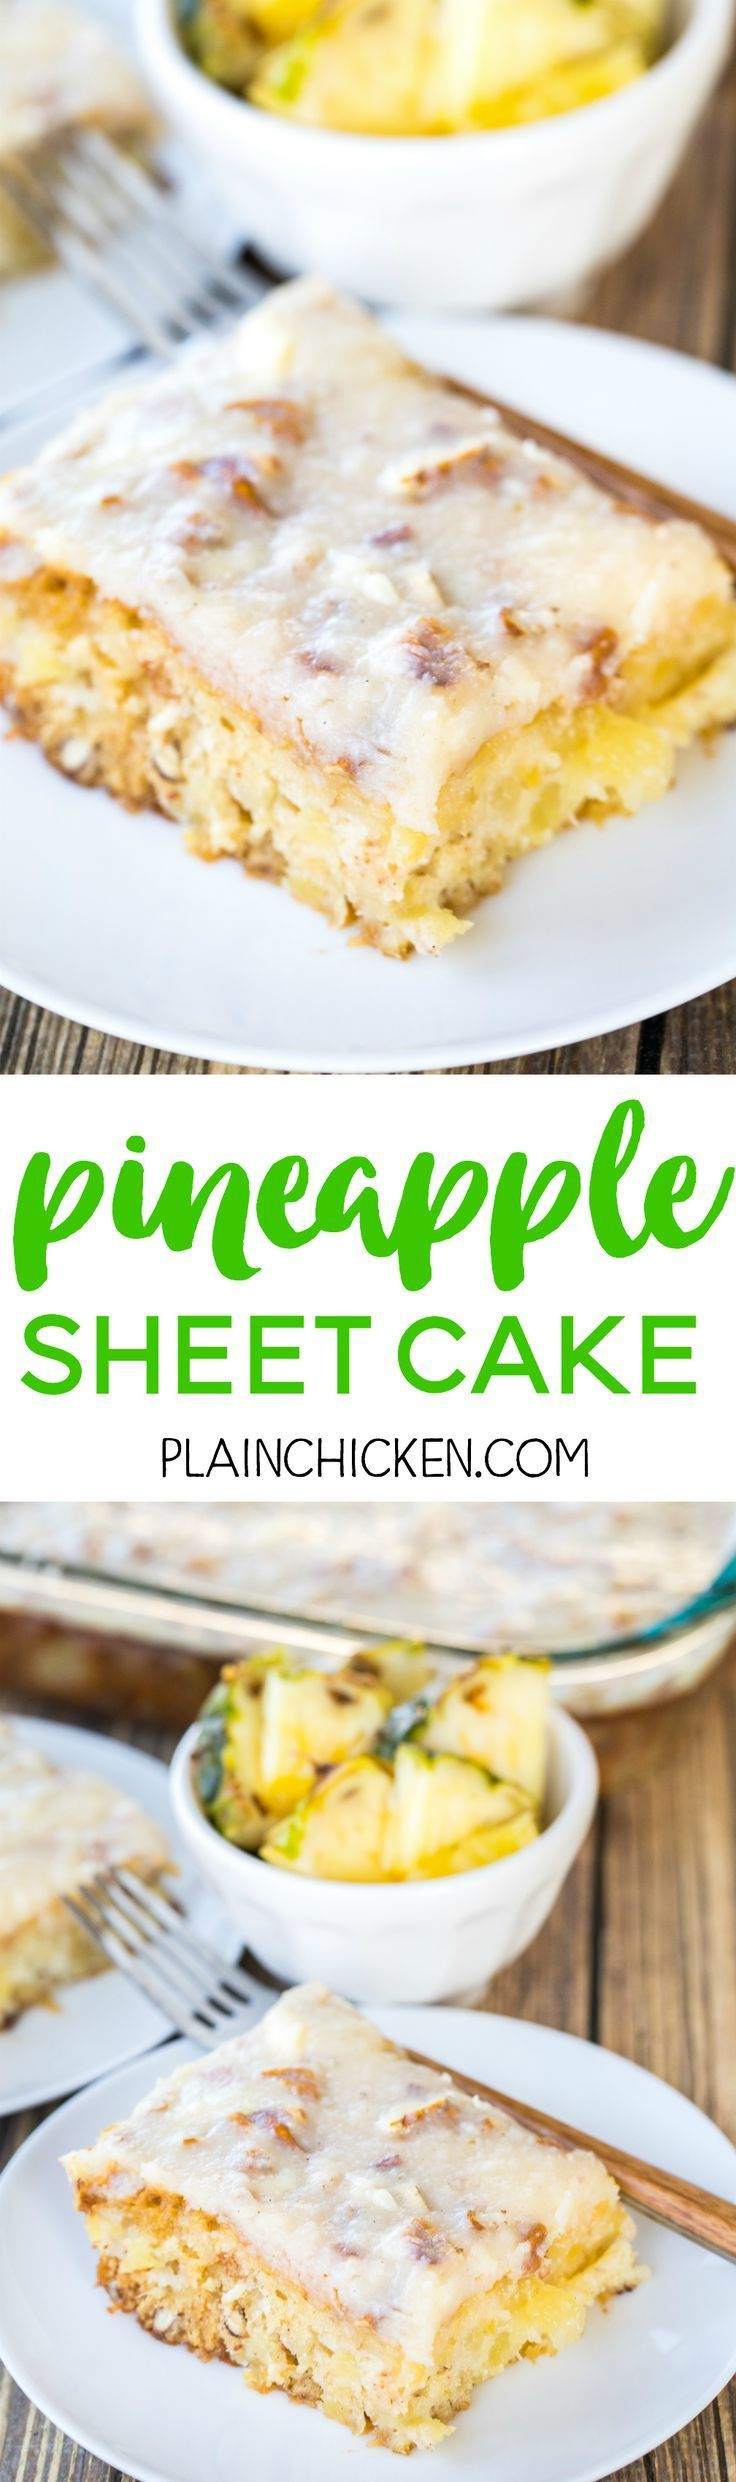 Pineapple Sheet Cake - seriously delicious! Easy pineapple cake with a delicious cream cheese frosting! Sugar, flour, baking soda, vanilla, crushed pineapple, pecans, butter, cream cheese. Great for cookouts and potlucks. Can make ahead of time and refrig